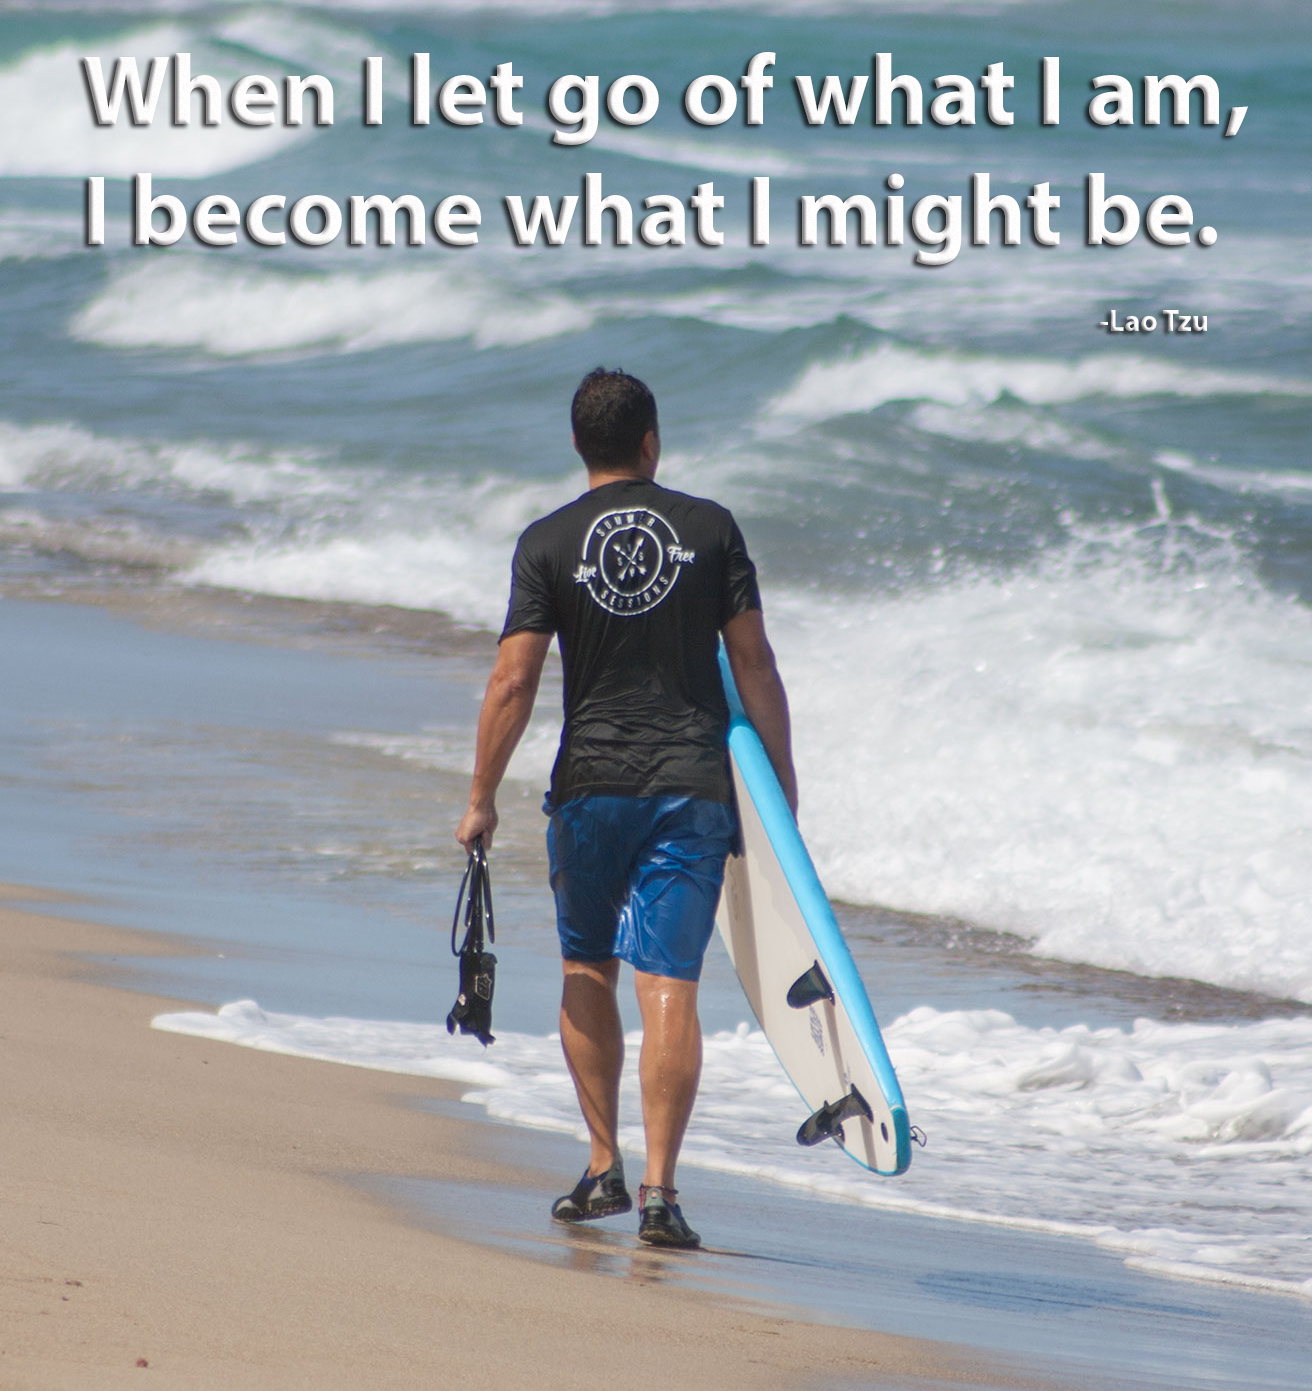 7a3 stoked, learning to surf at playa encuentro inspirational photo,Surf Meme